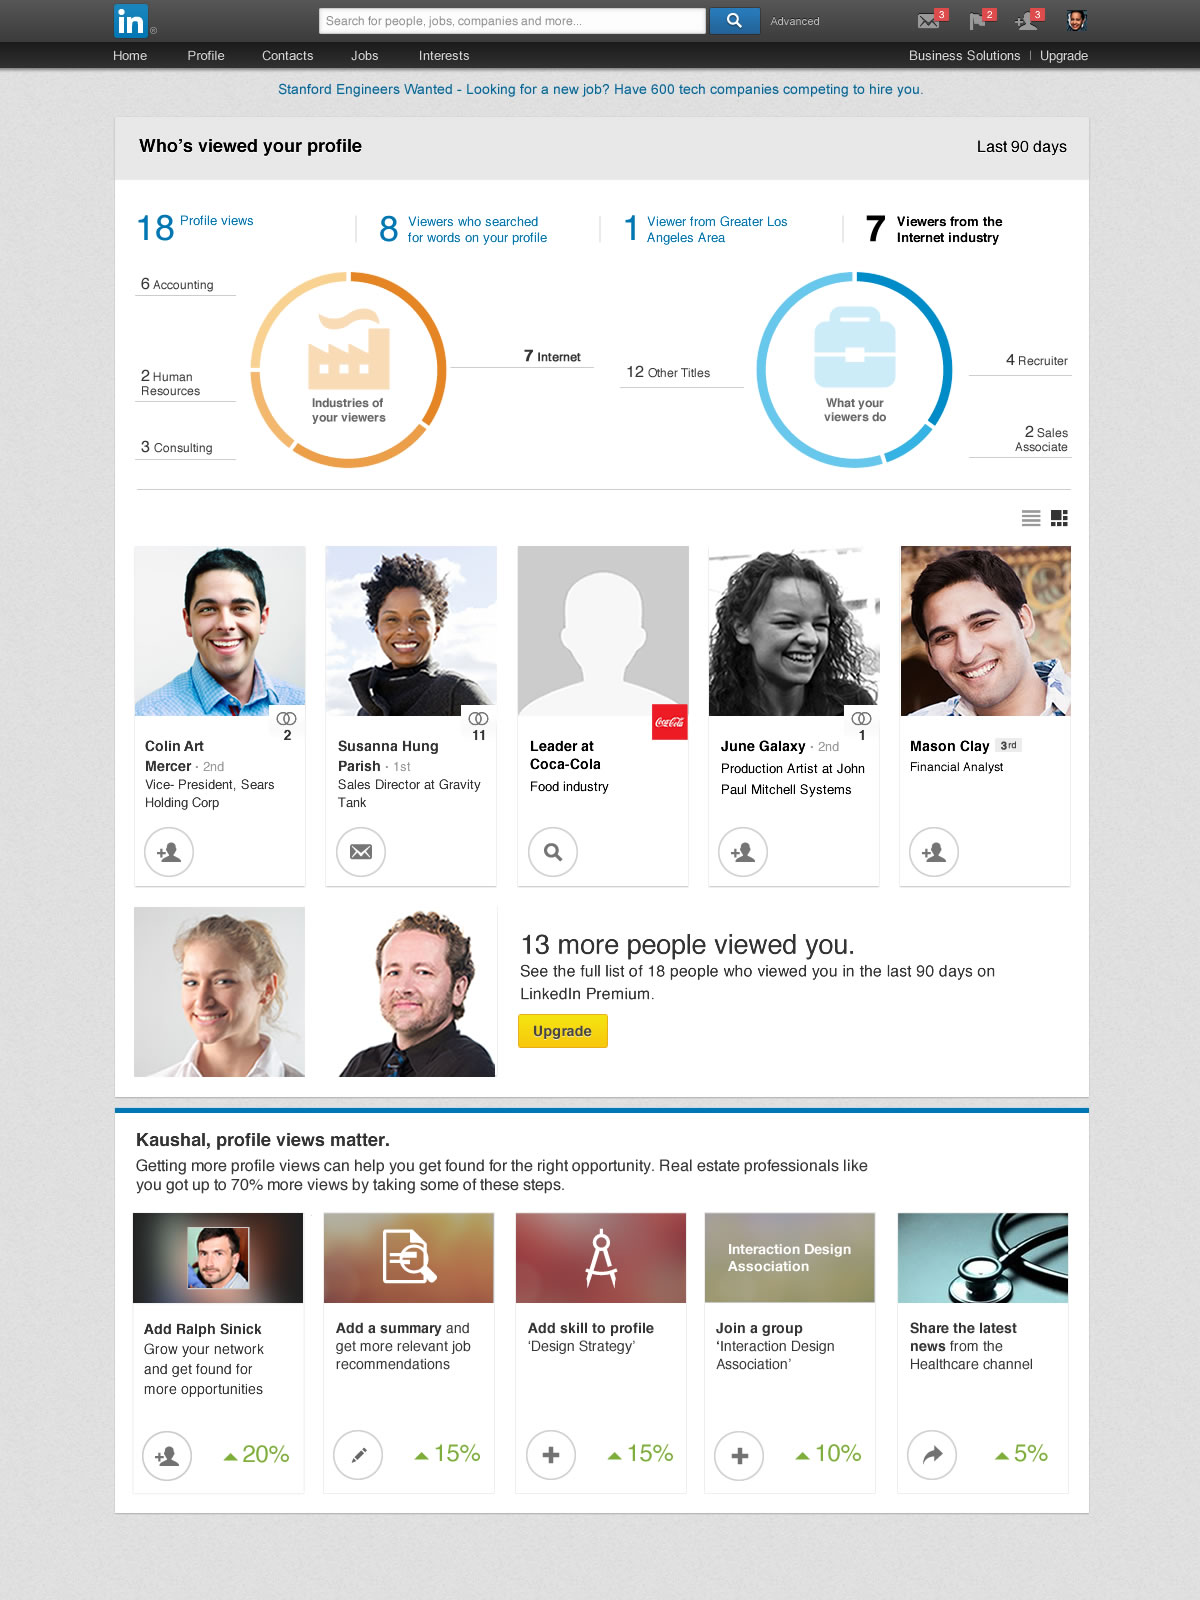 LinkedIn's Who's Viewed Your Profile Gets Analytics and Insights